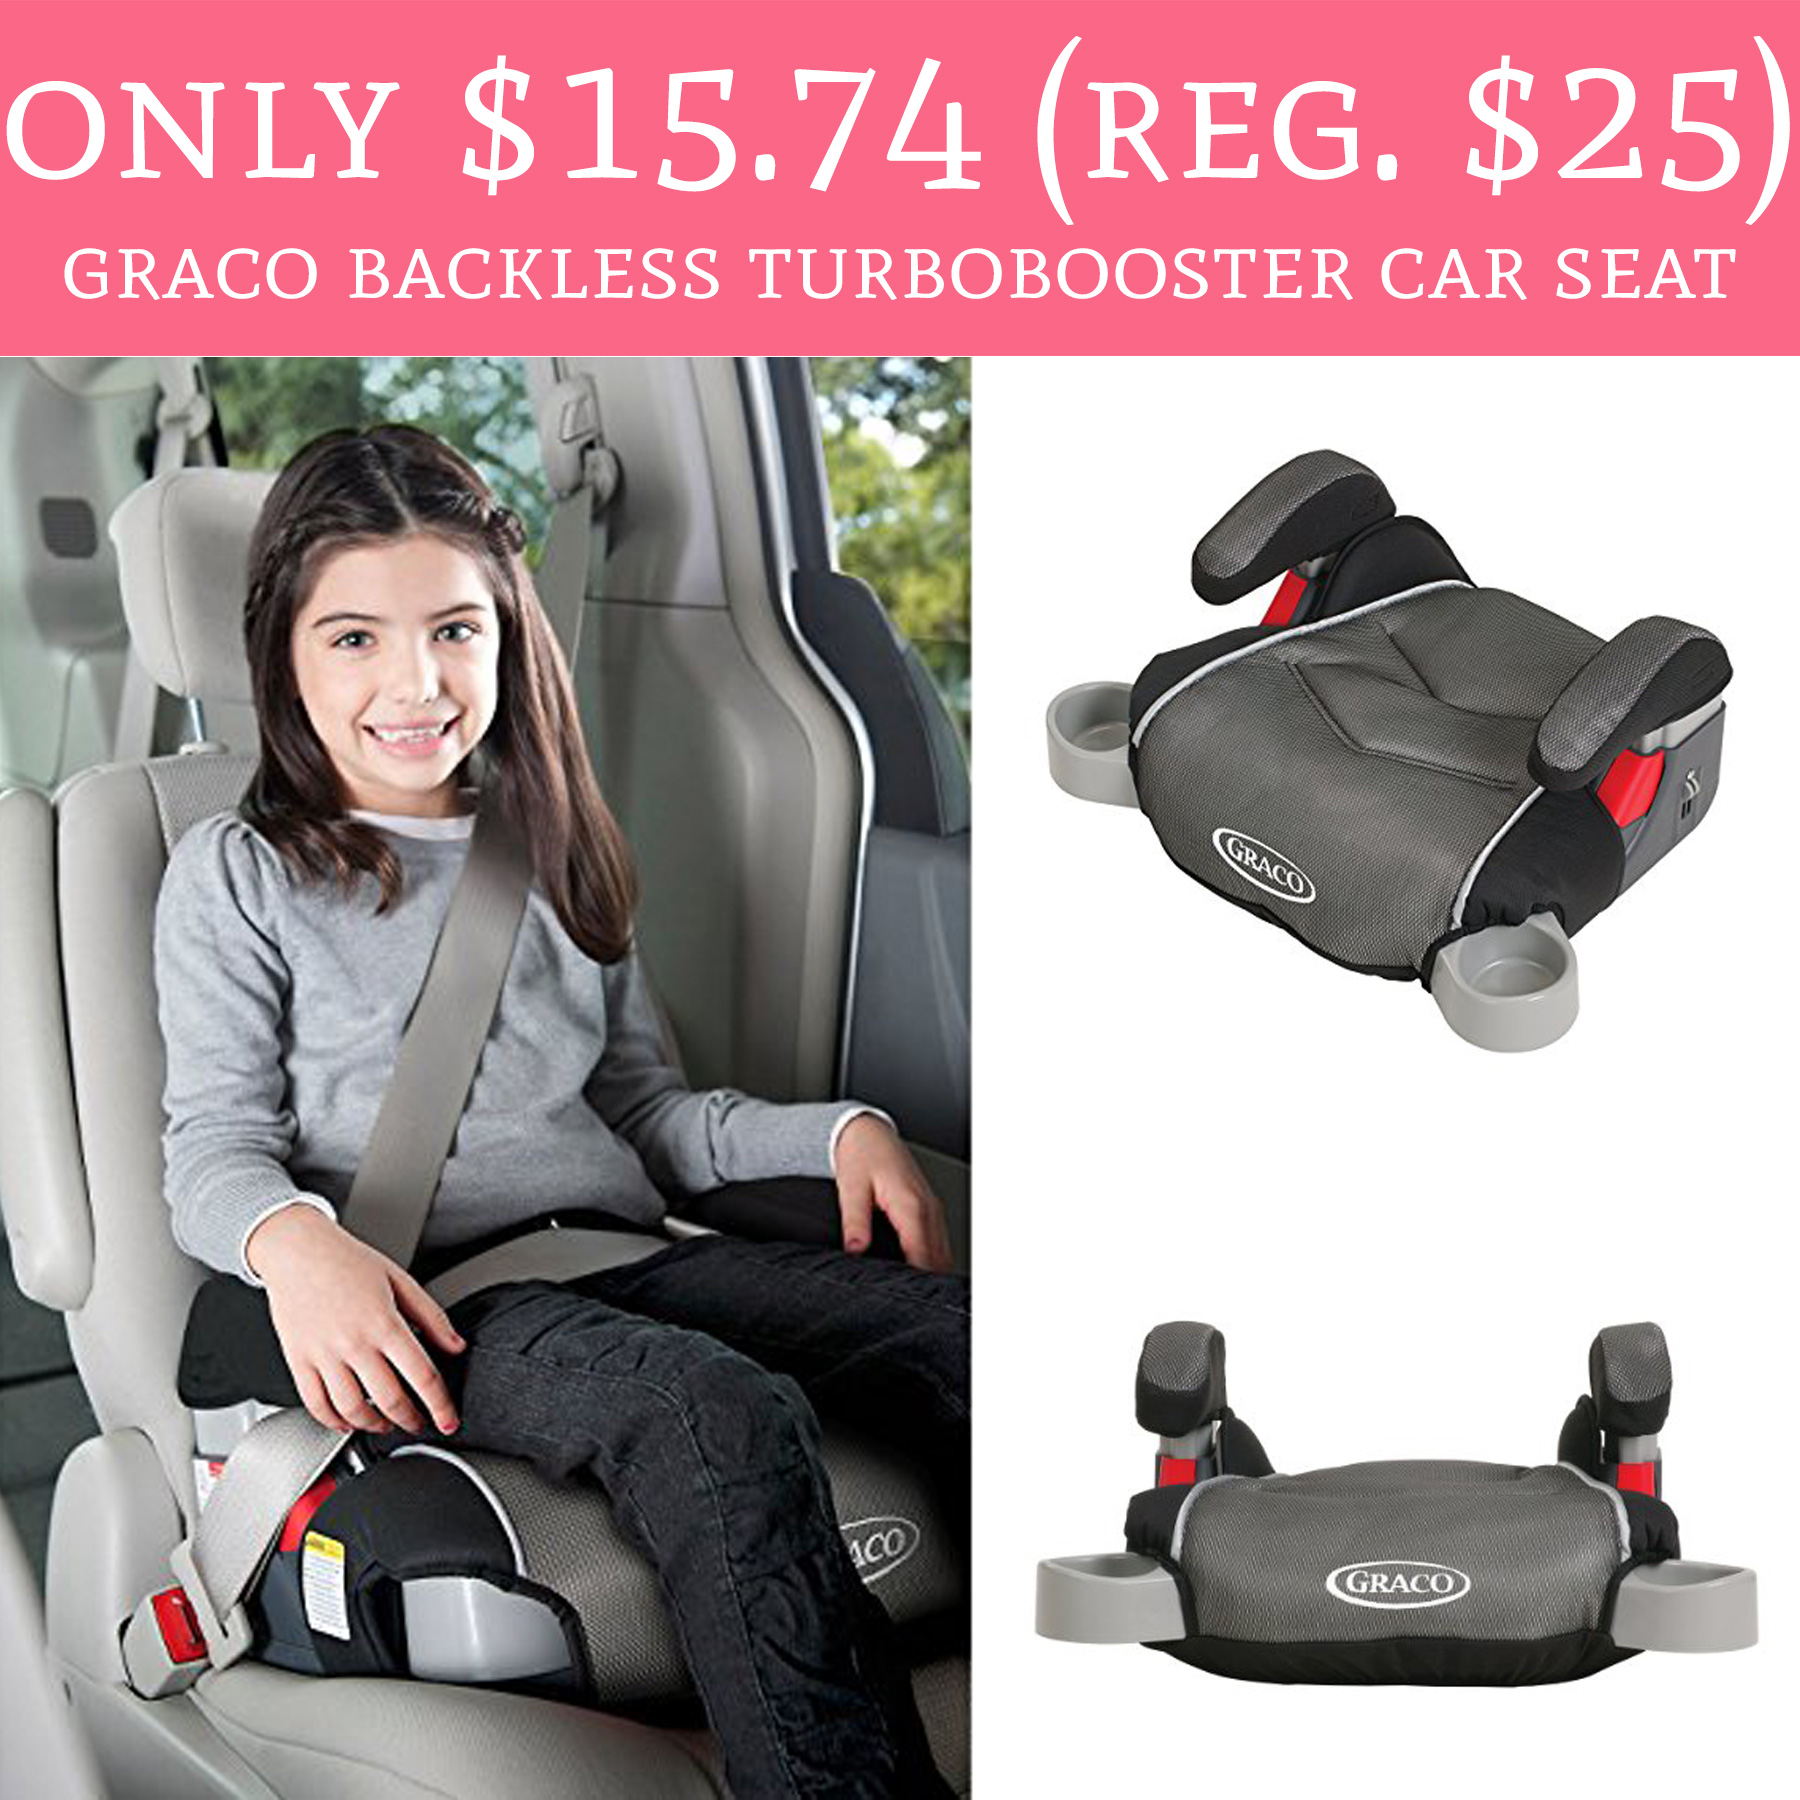 This Deal Is Today Only Head On Over To Amazon Where You Can Purchase The Graco Backless TurboBooster Car Seat